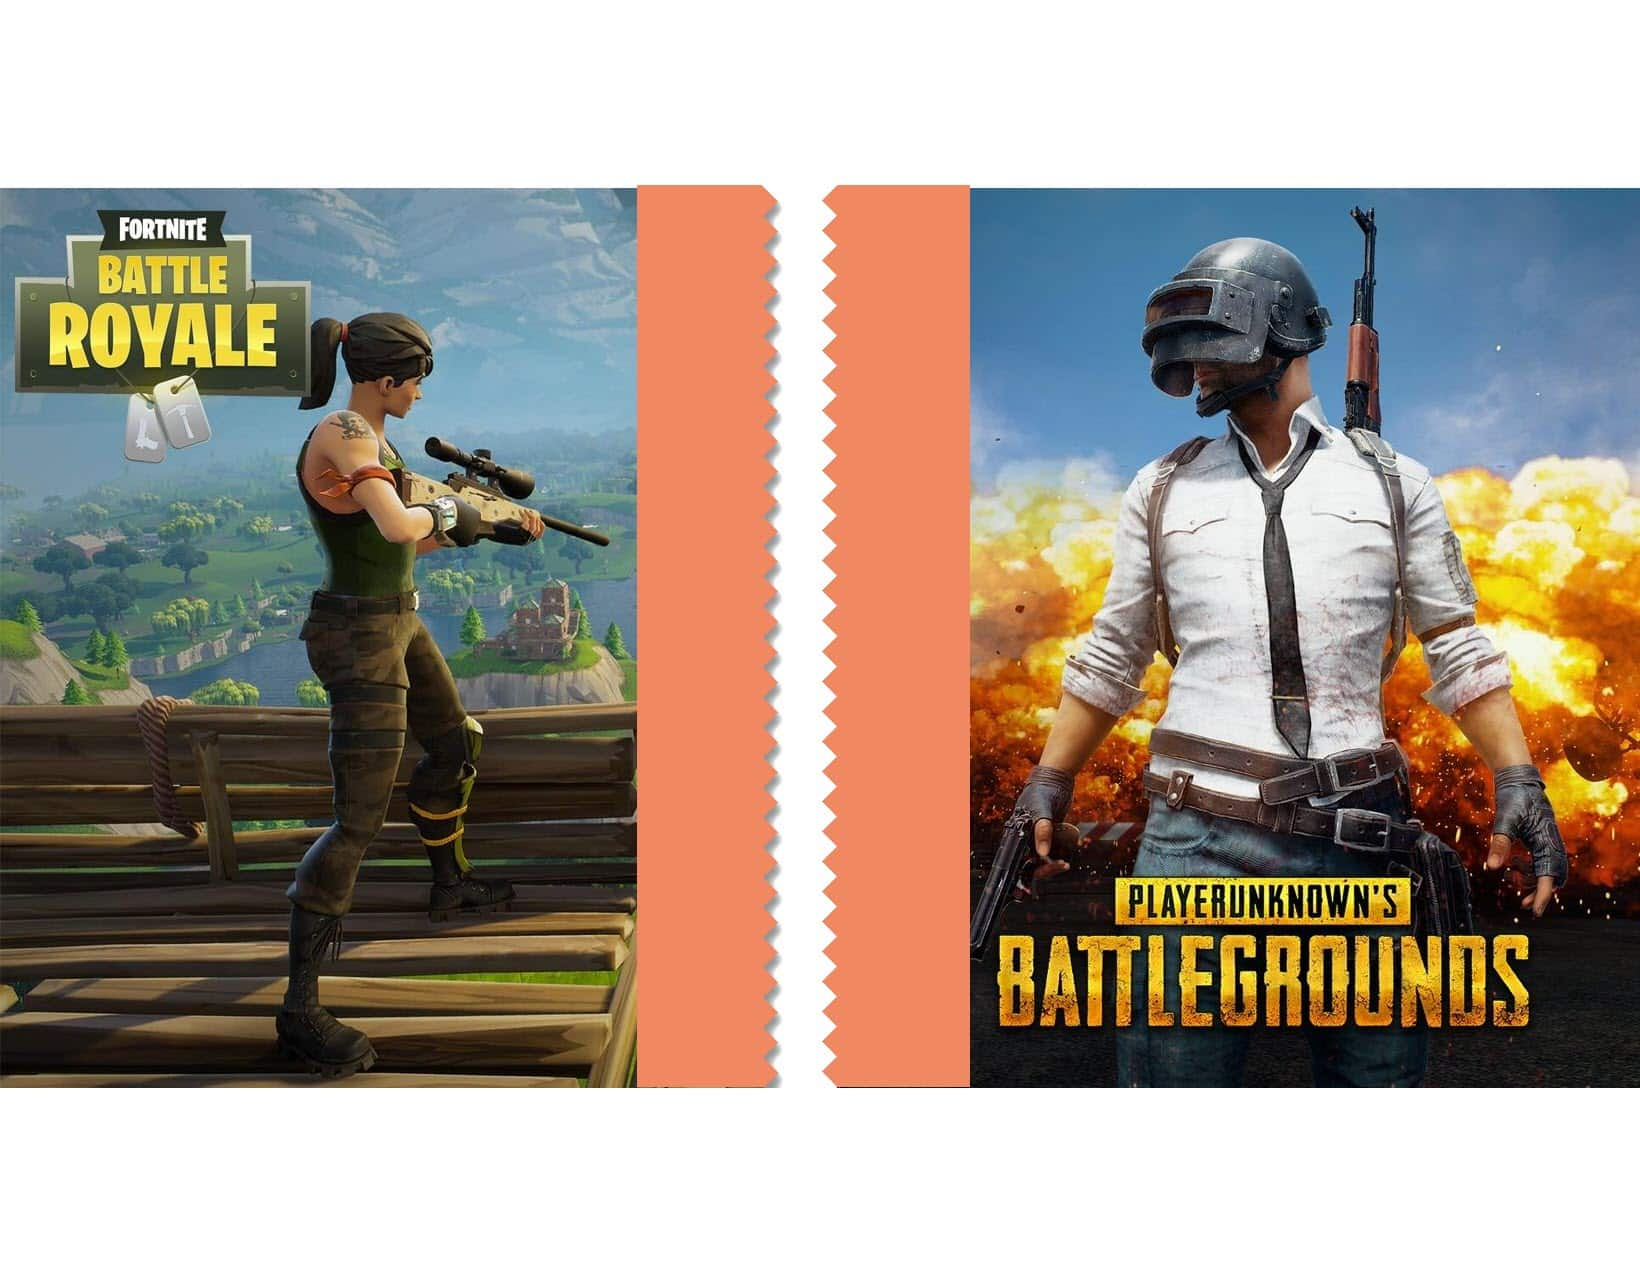 PUBG et Fortnite enterrent la hache de guerre